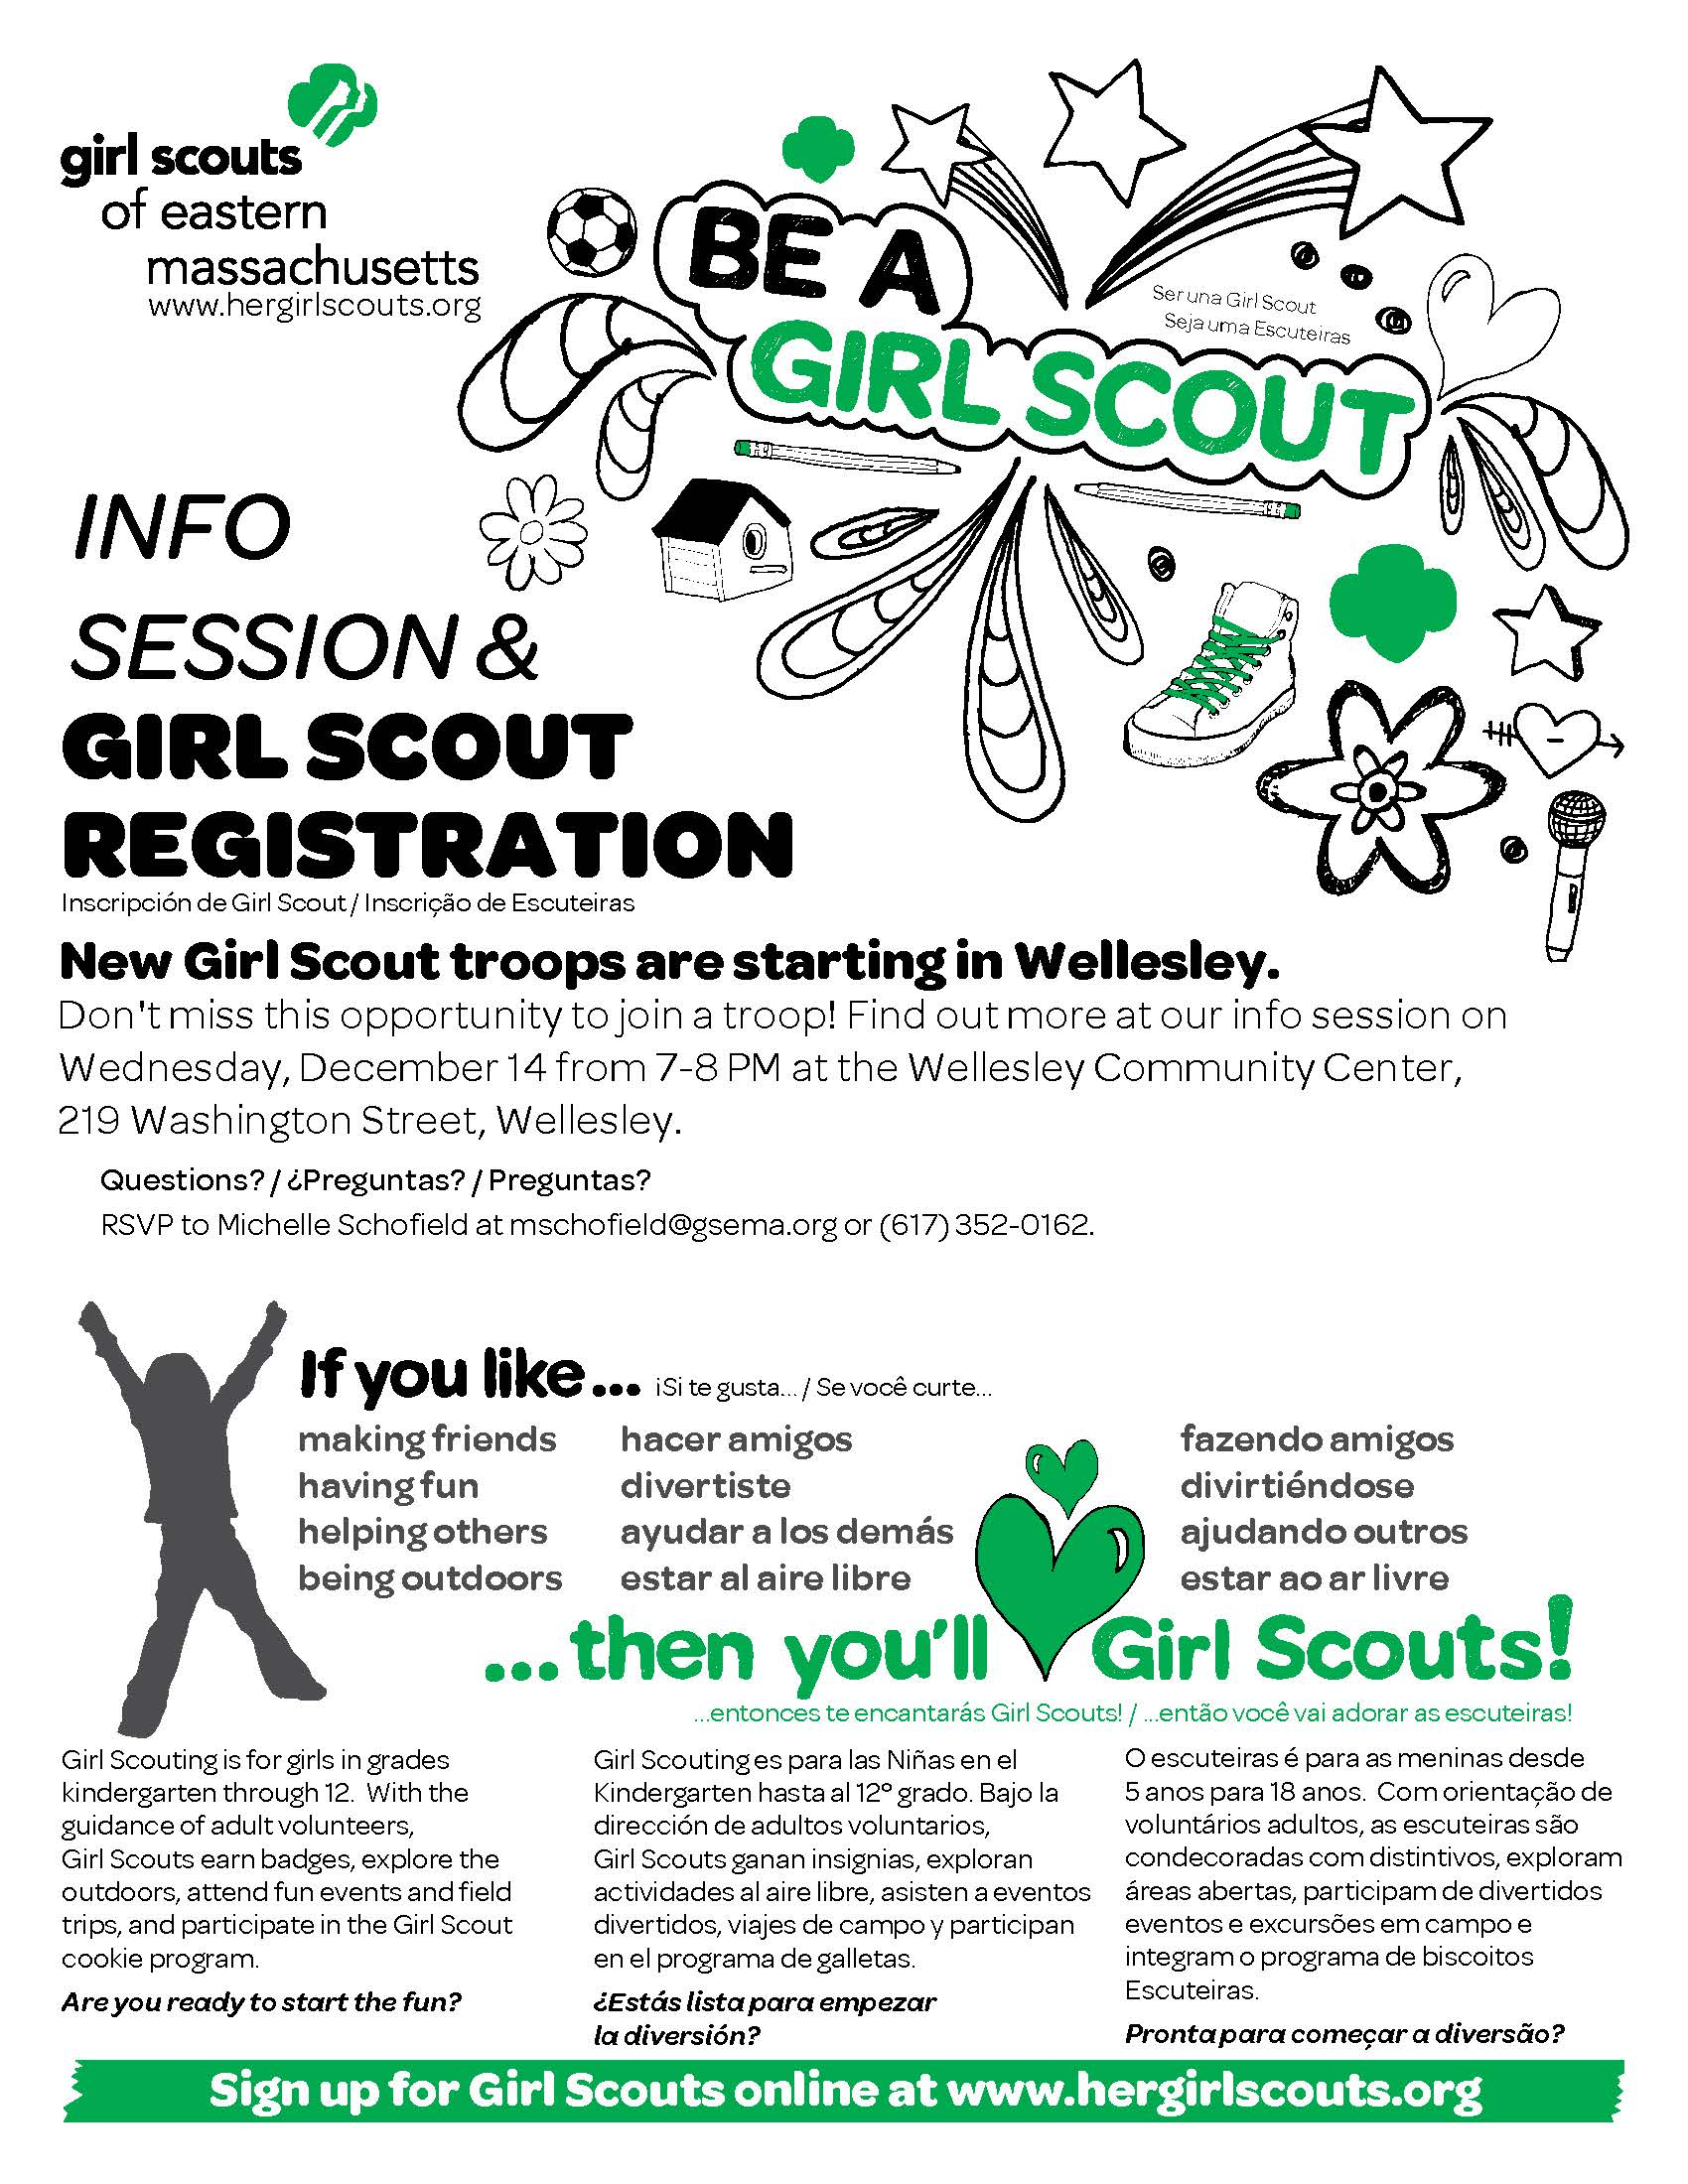 Wellesley Girl Scouts